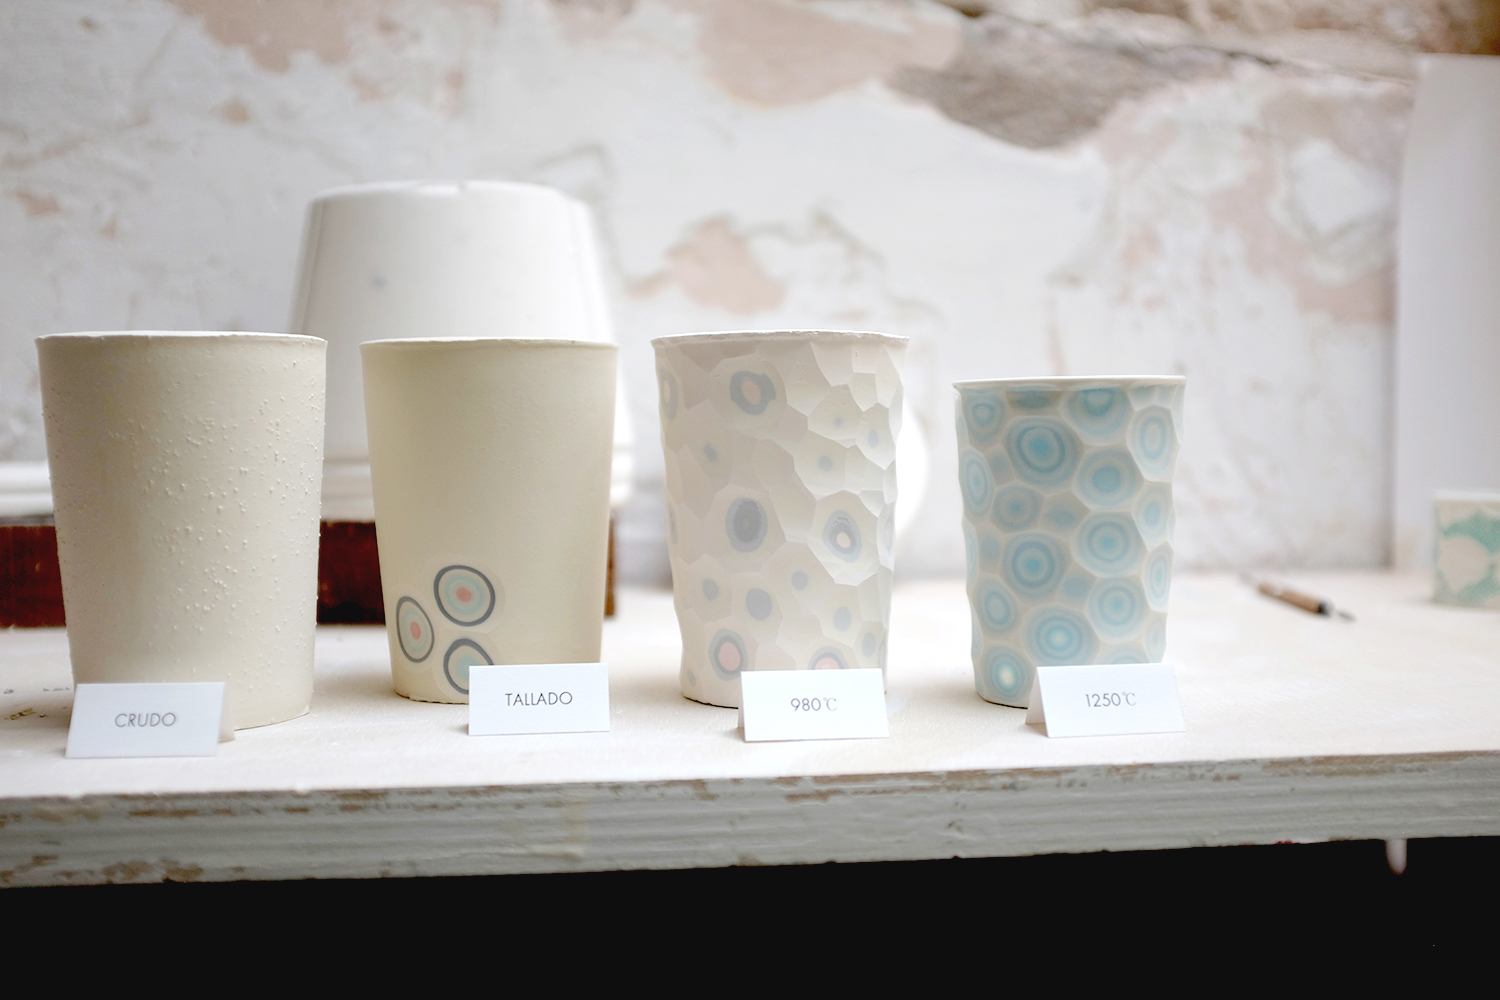 a5_mdy_minjijung_ceramics_manufactured_colors